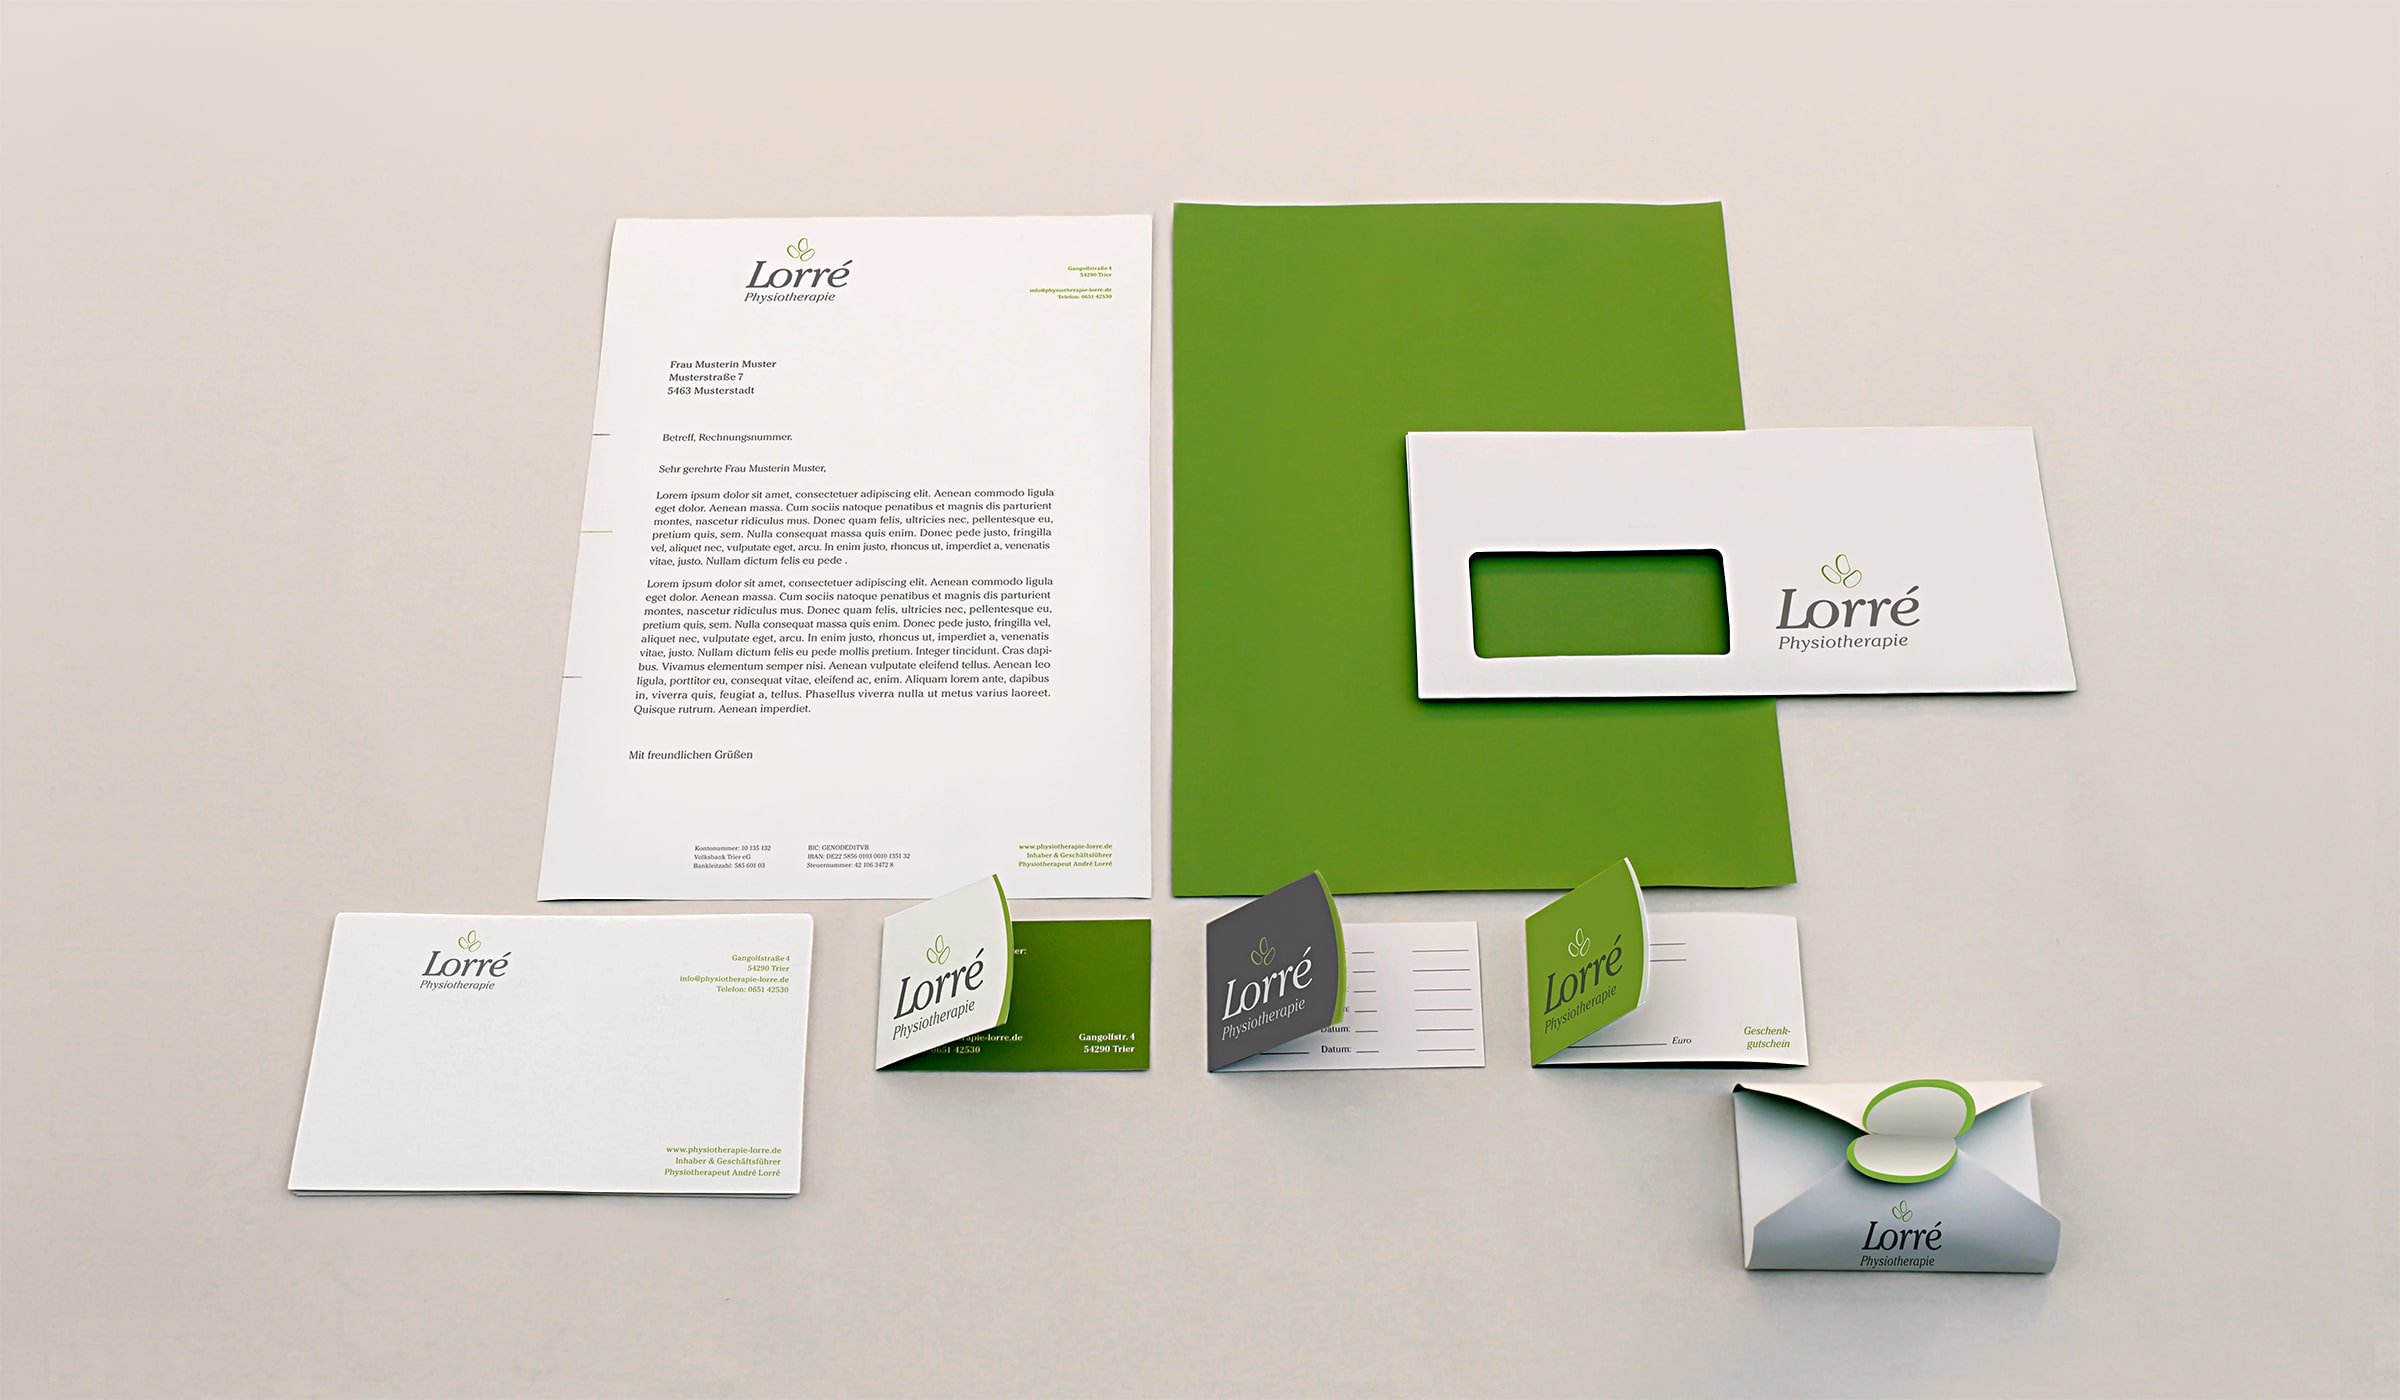 Corporate Identity/ Konzeptarbeit ~ Corporate Design/ Physiotherapie Lorré Trier/ Branding/ Brand Design/ Logo/ KERSTIN MICHELS – DESIGN/ Designagentur/ Werbeagentur/Grafikdesign/ Kommunikationsdesign/ Hermeskeil/ Hochwald/ Rheinland-Pfalz/ Werbung/ Design